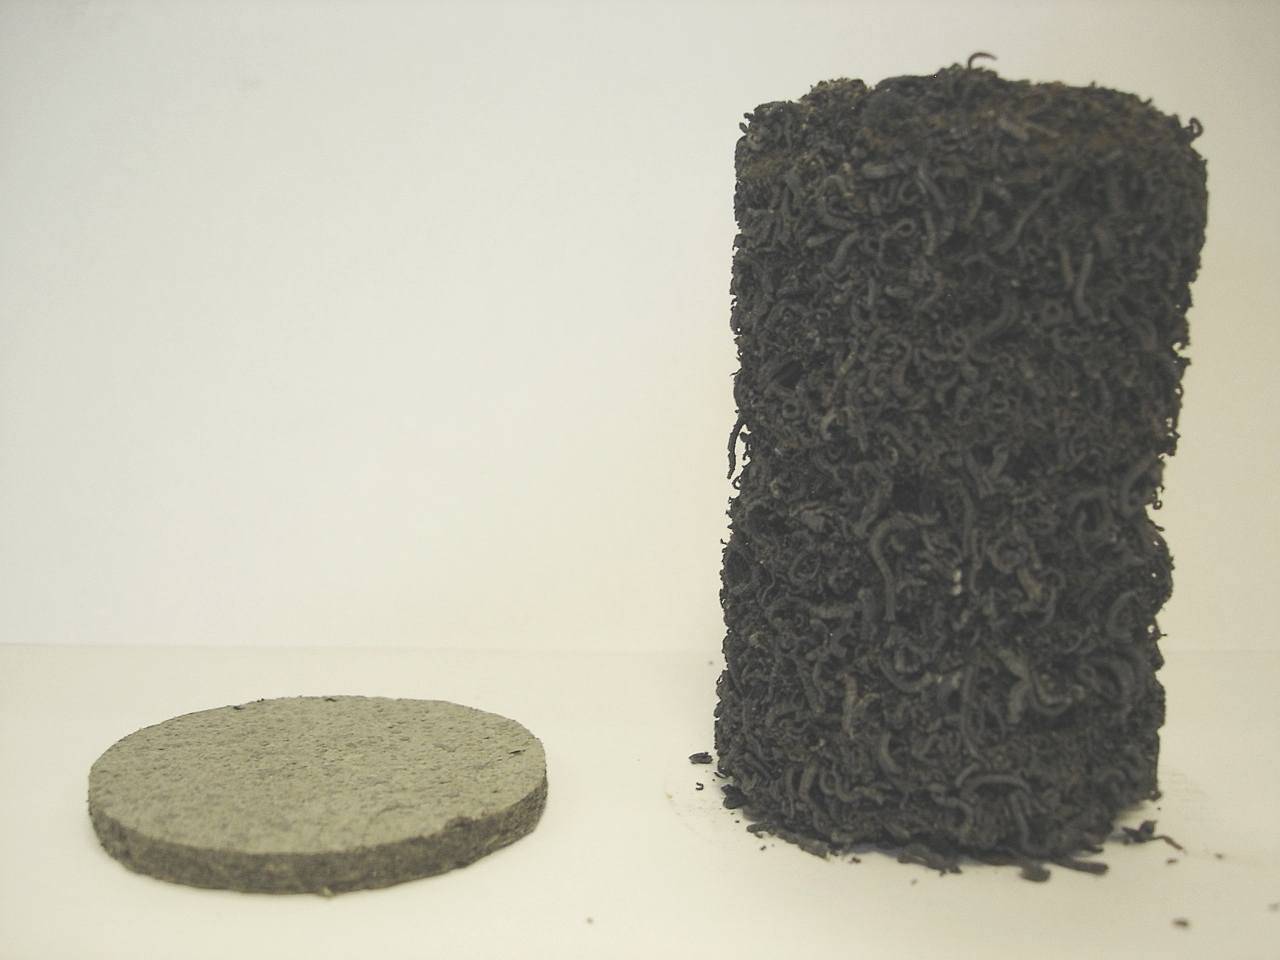 Expanded Firefly Intumescent Material